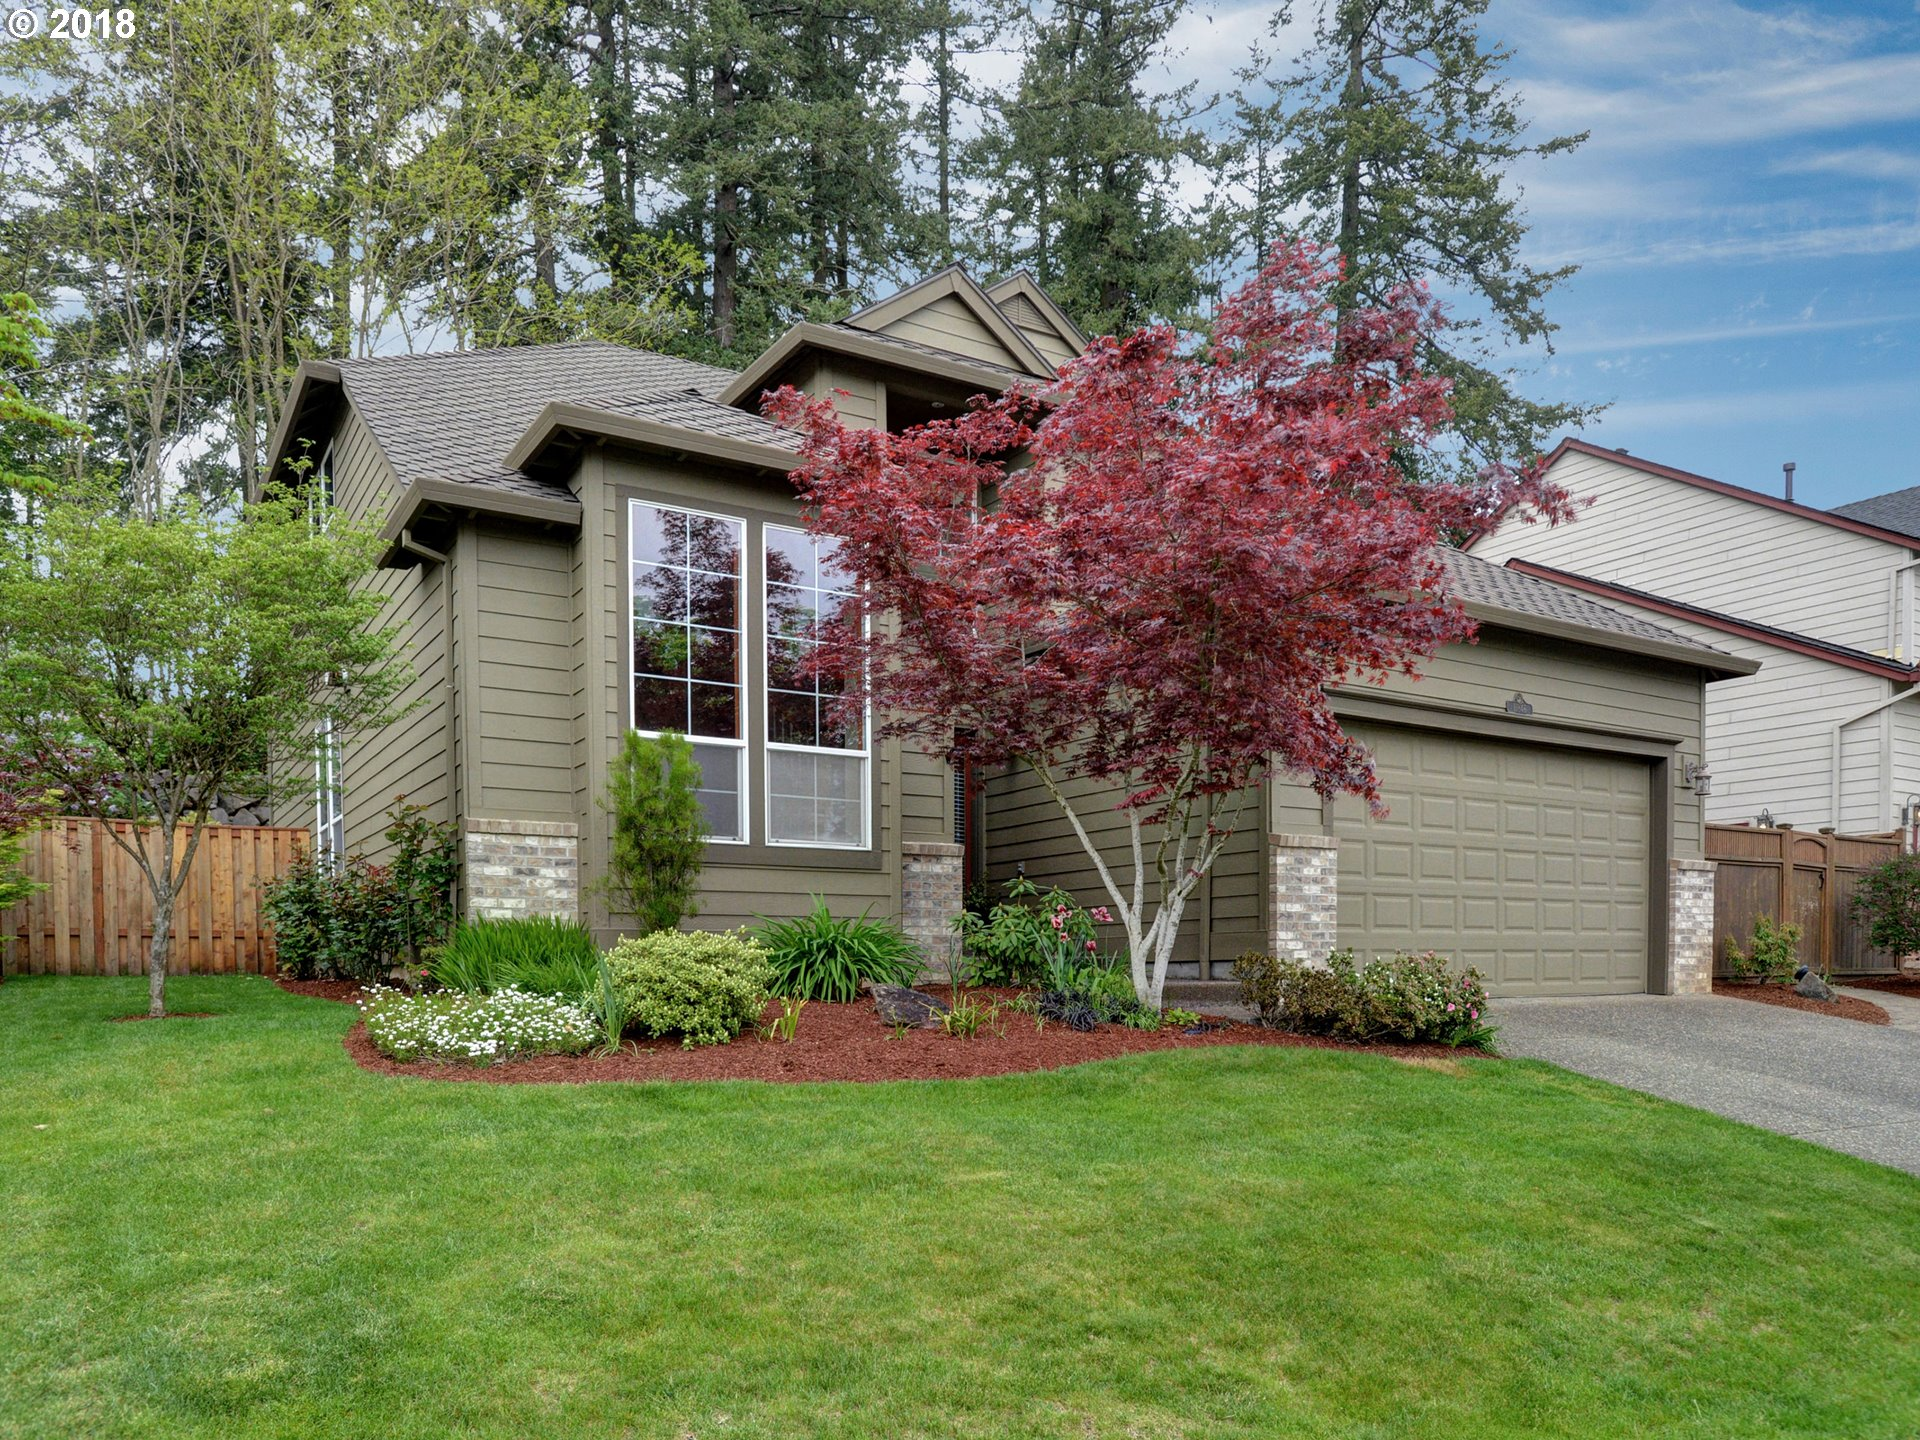 11845 SW Turnstone Ave in the Murrayhill/Progress Ridge area .  Model-home-perfect w adorable curb appeal. Cool/spacious floor plan updated to perfection in the most hip & stylish manner. Quartz counters/stone backsplash. Perfect greenbelt lot w amazing water feature & gazebo. Close to Murrayhill & great Progress Ridge shops/entertainment. Great schools... Scholls Heights/Mountainside. Roof, furnace, H2O updated!